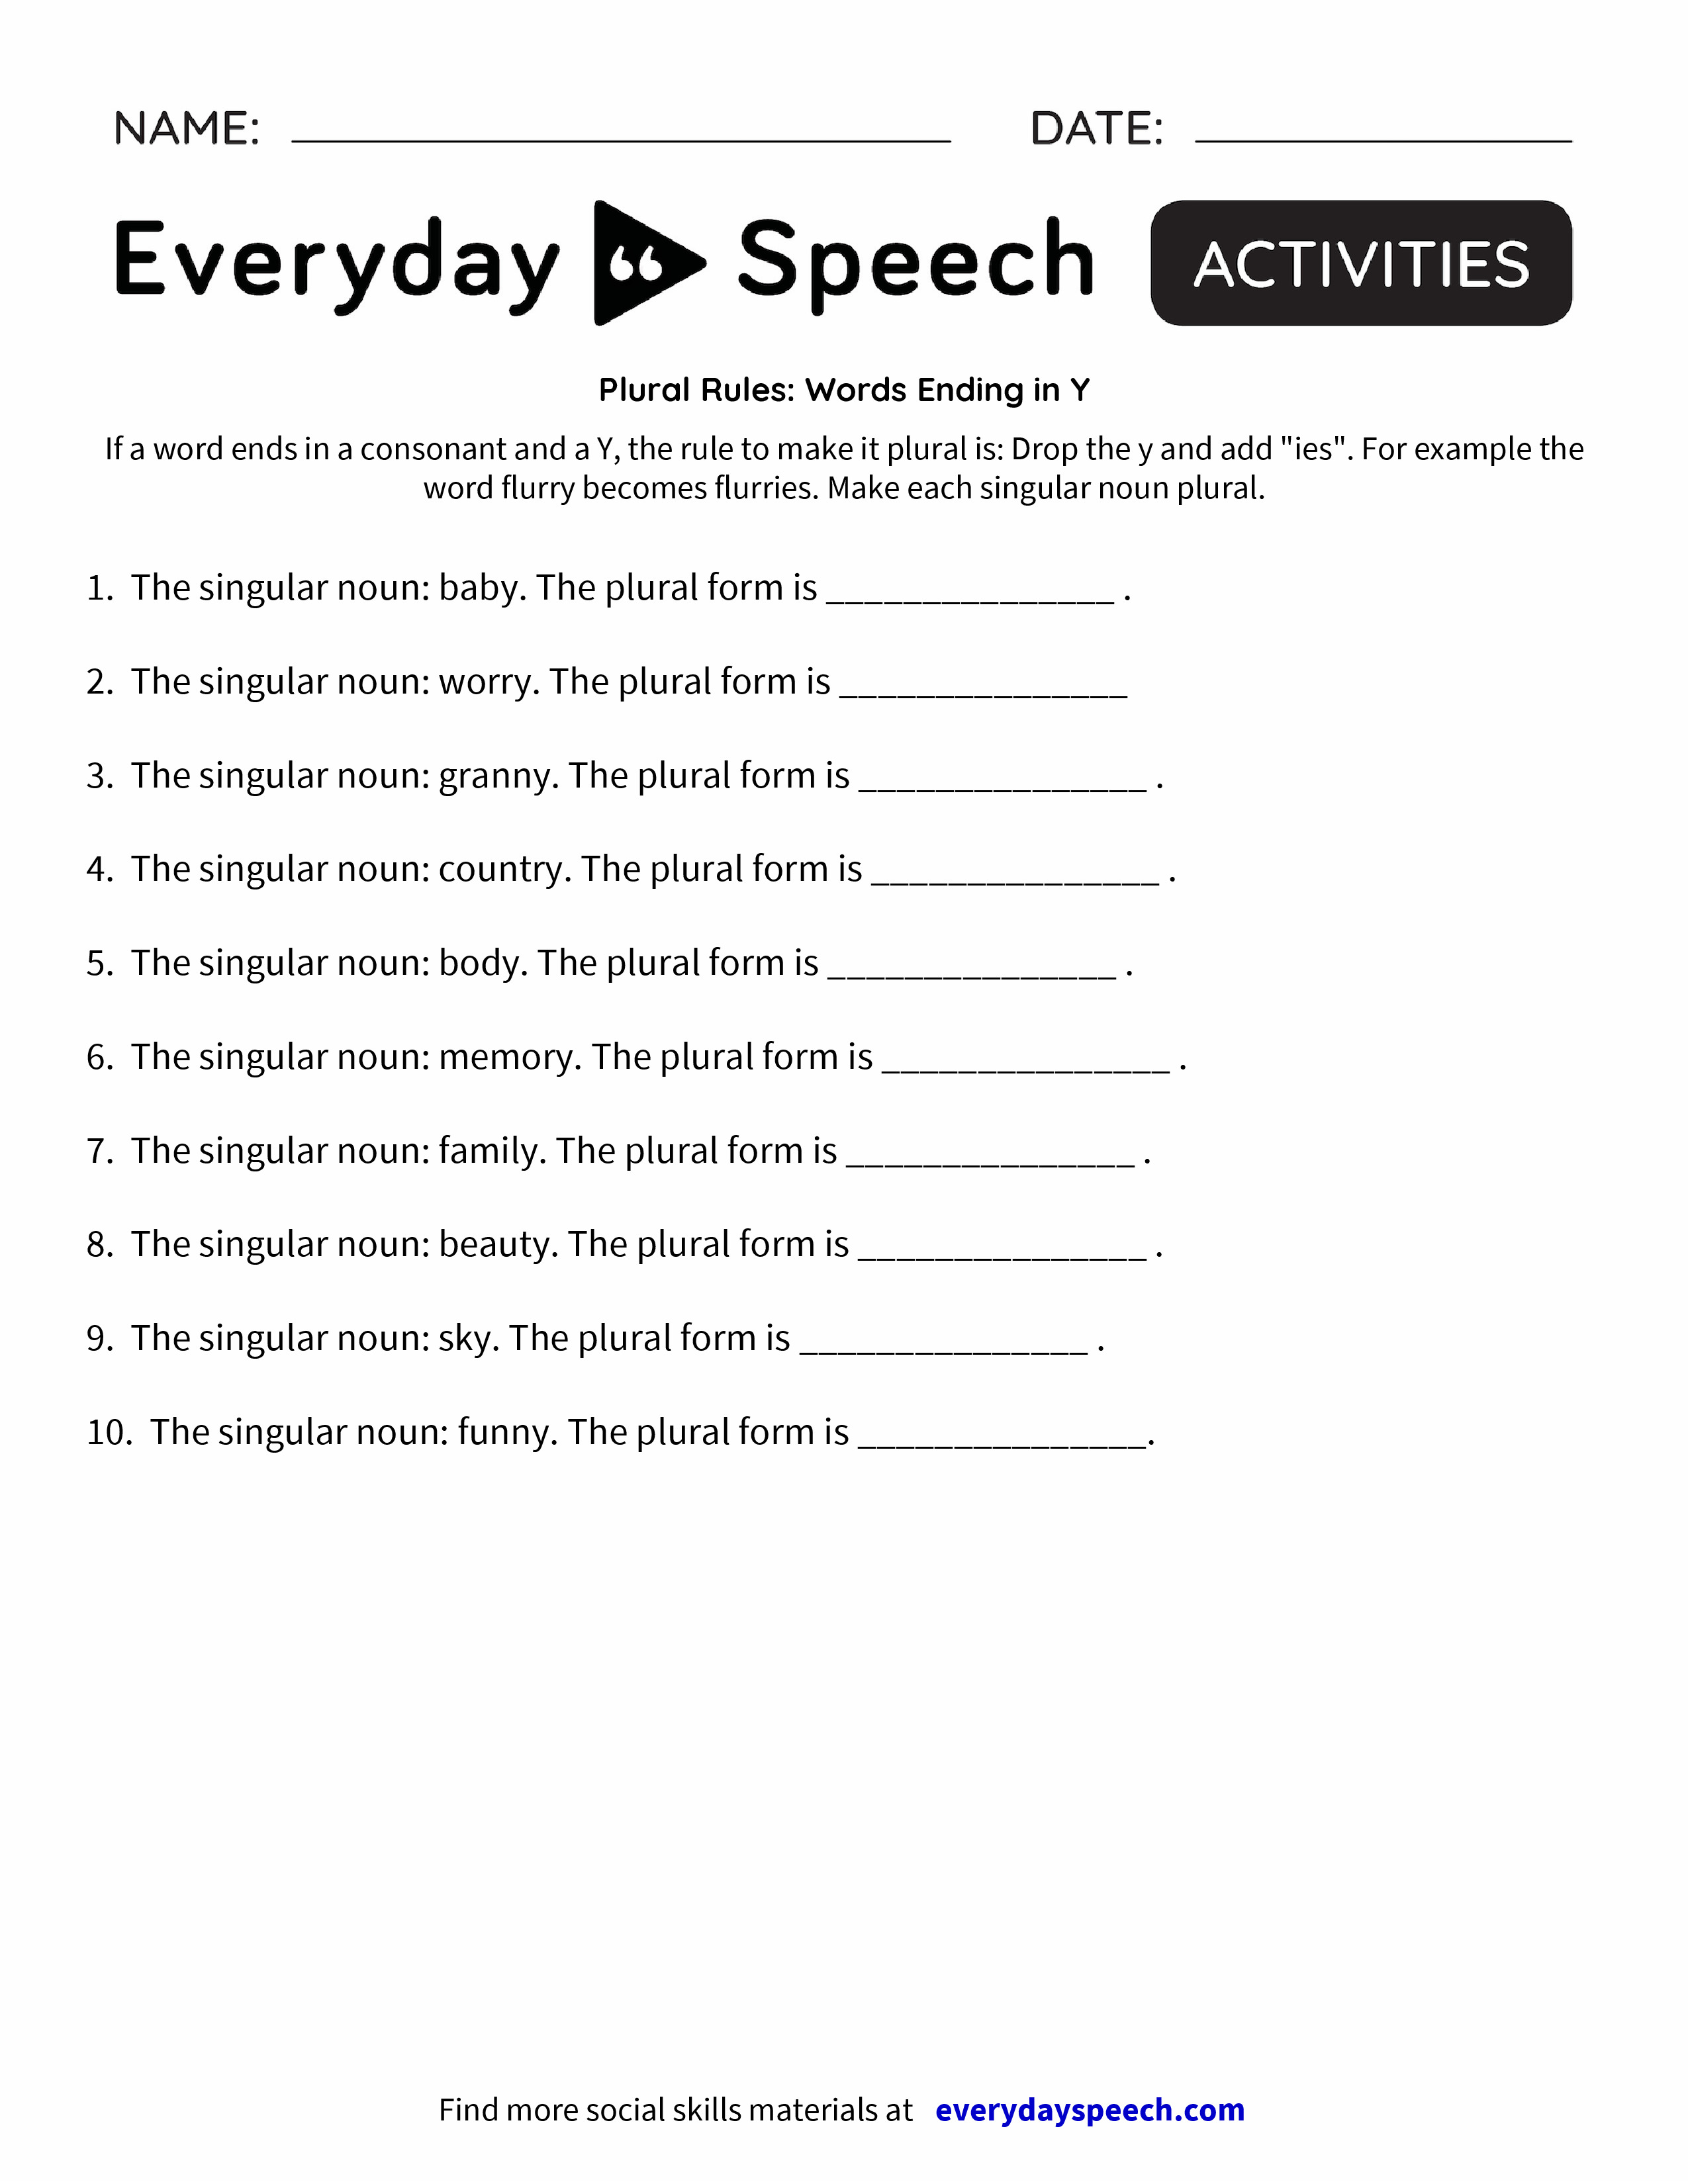 Plural Rules: Words Ending in Y - Everyday Speech - Everyday Speech